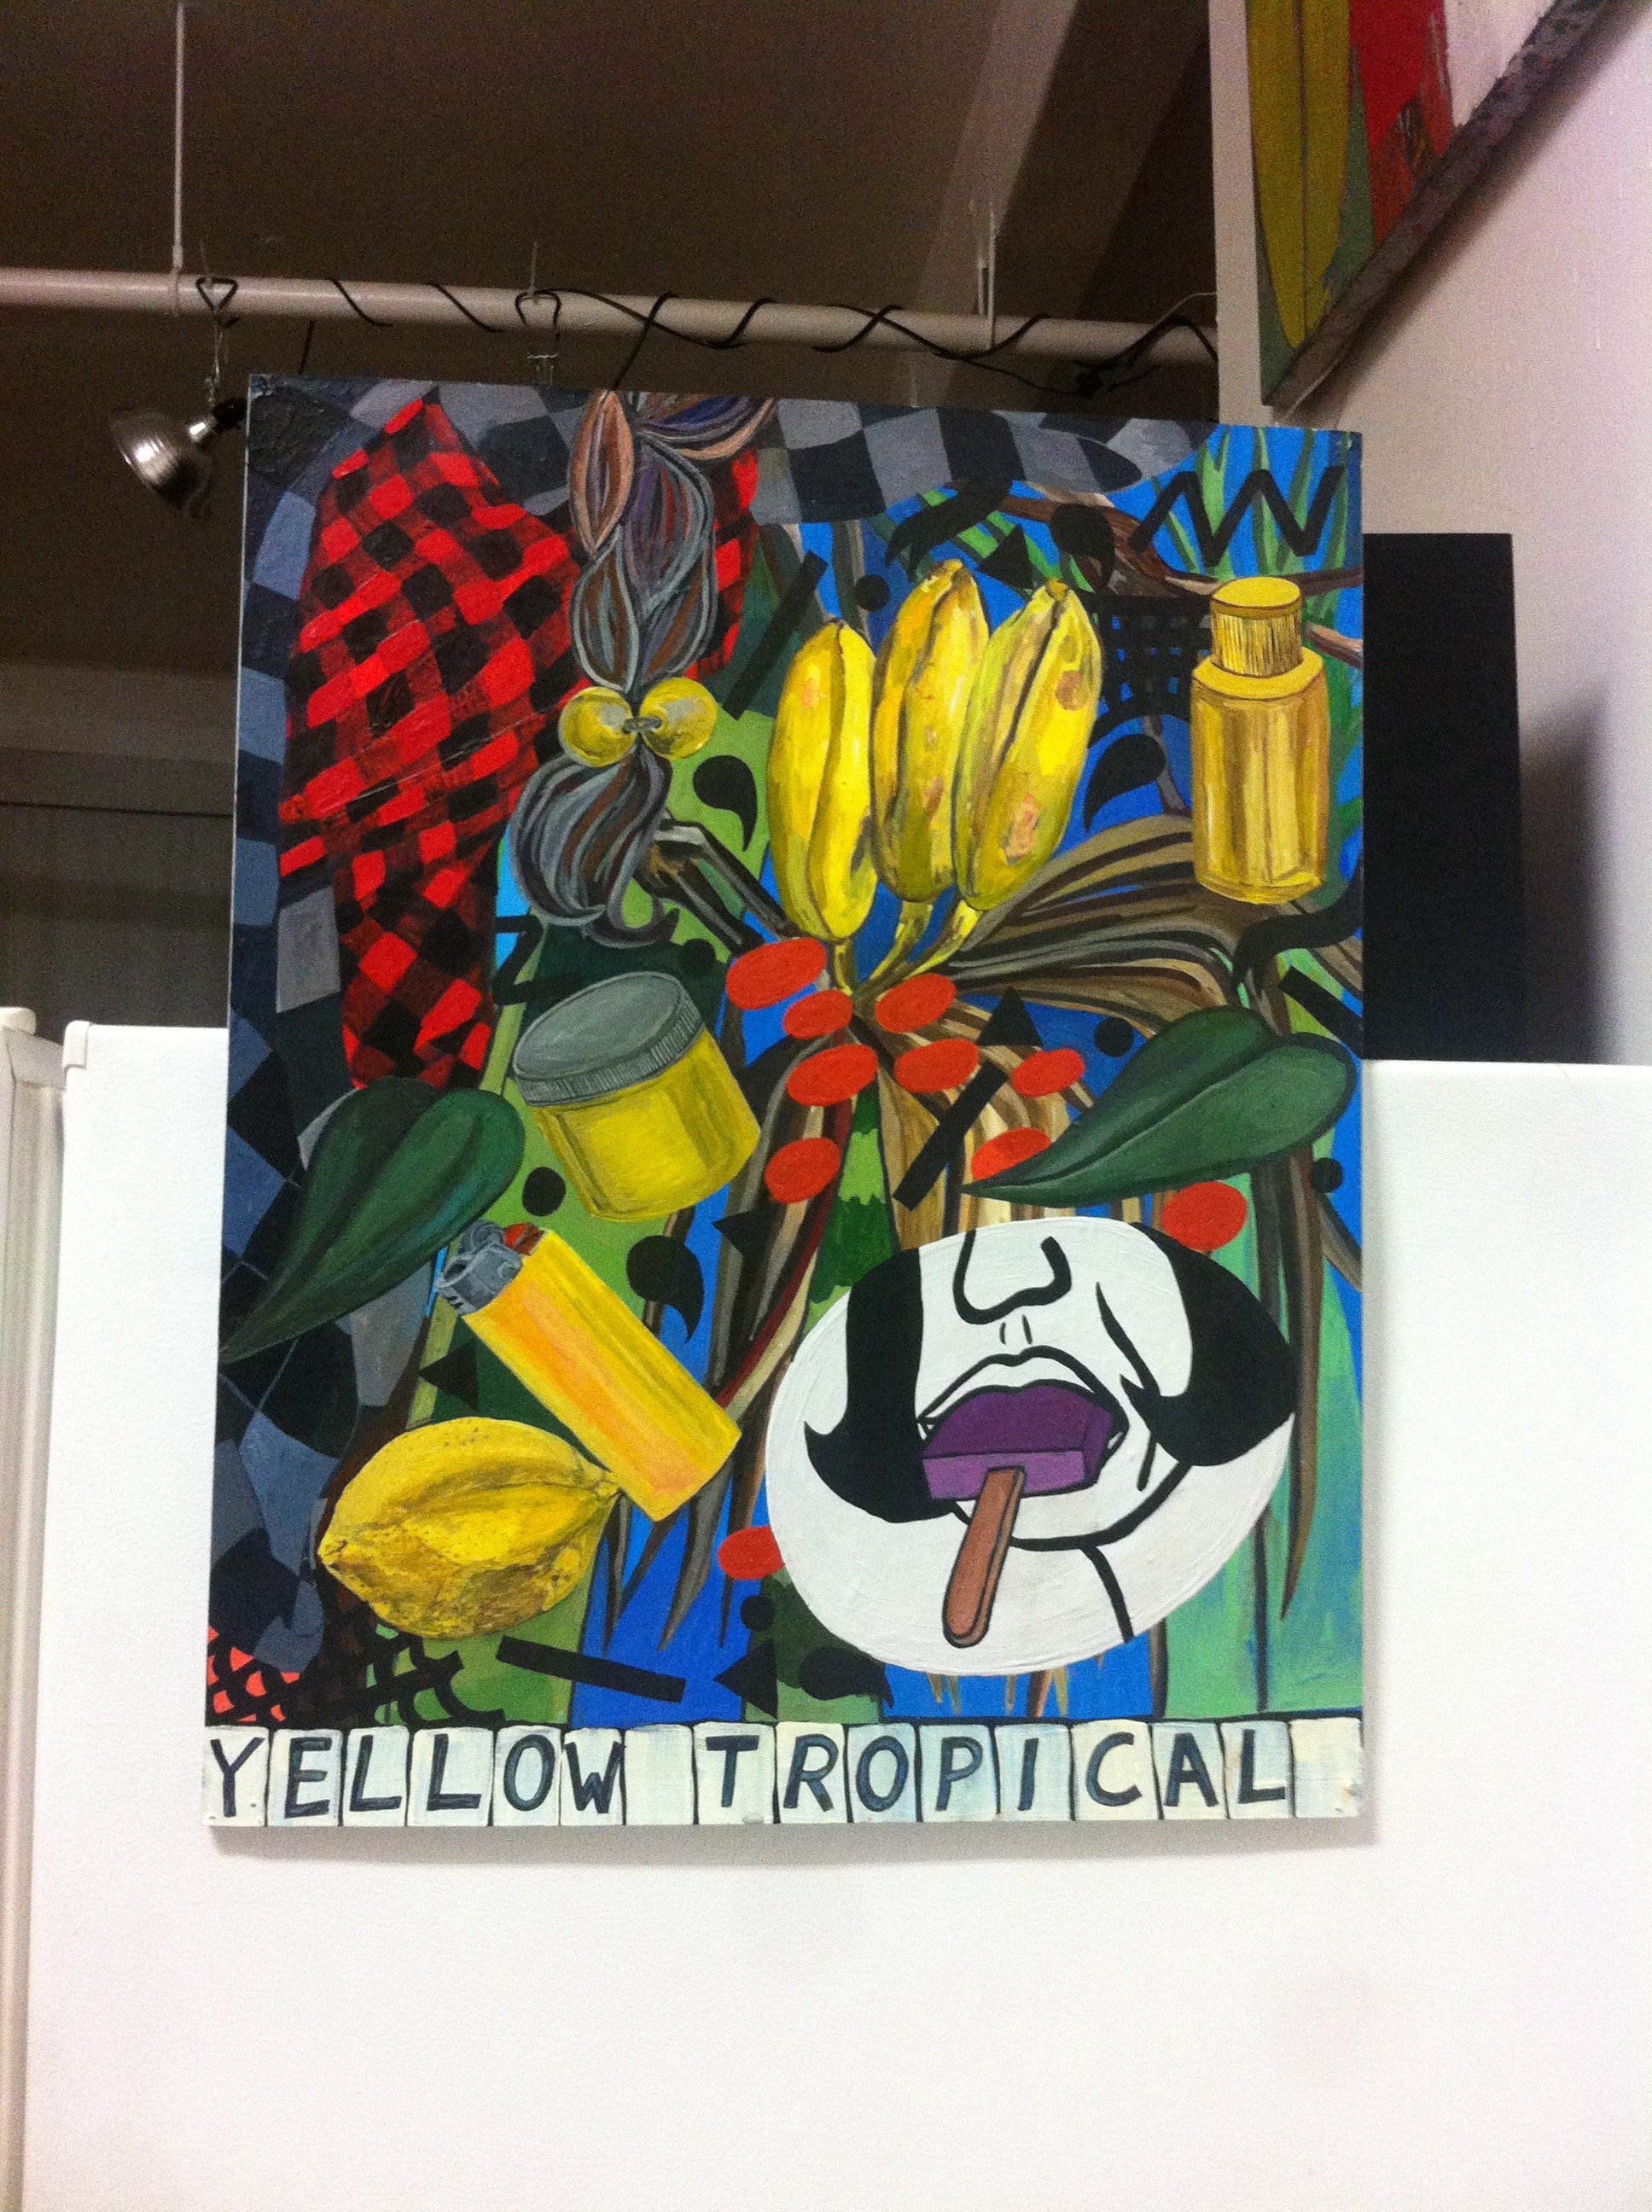 YELLOW TROPICAL_2013_ACRYLIC ON PAPER_NILAY LAWSON.jpg